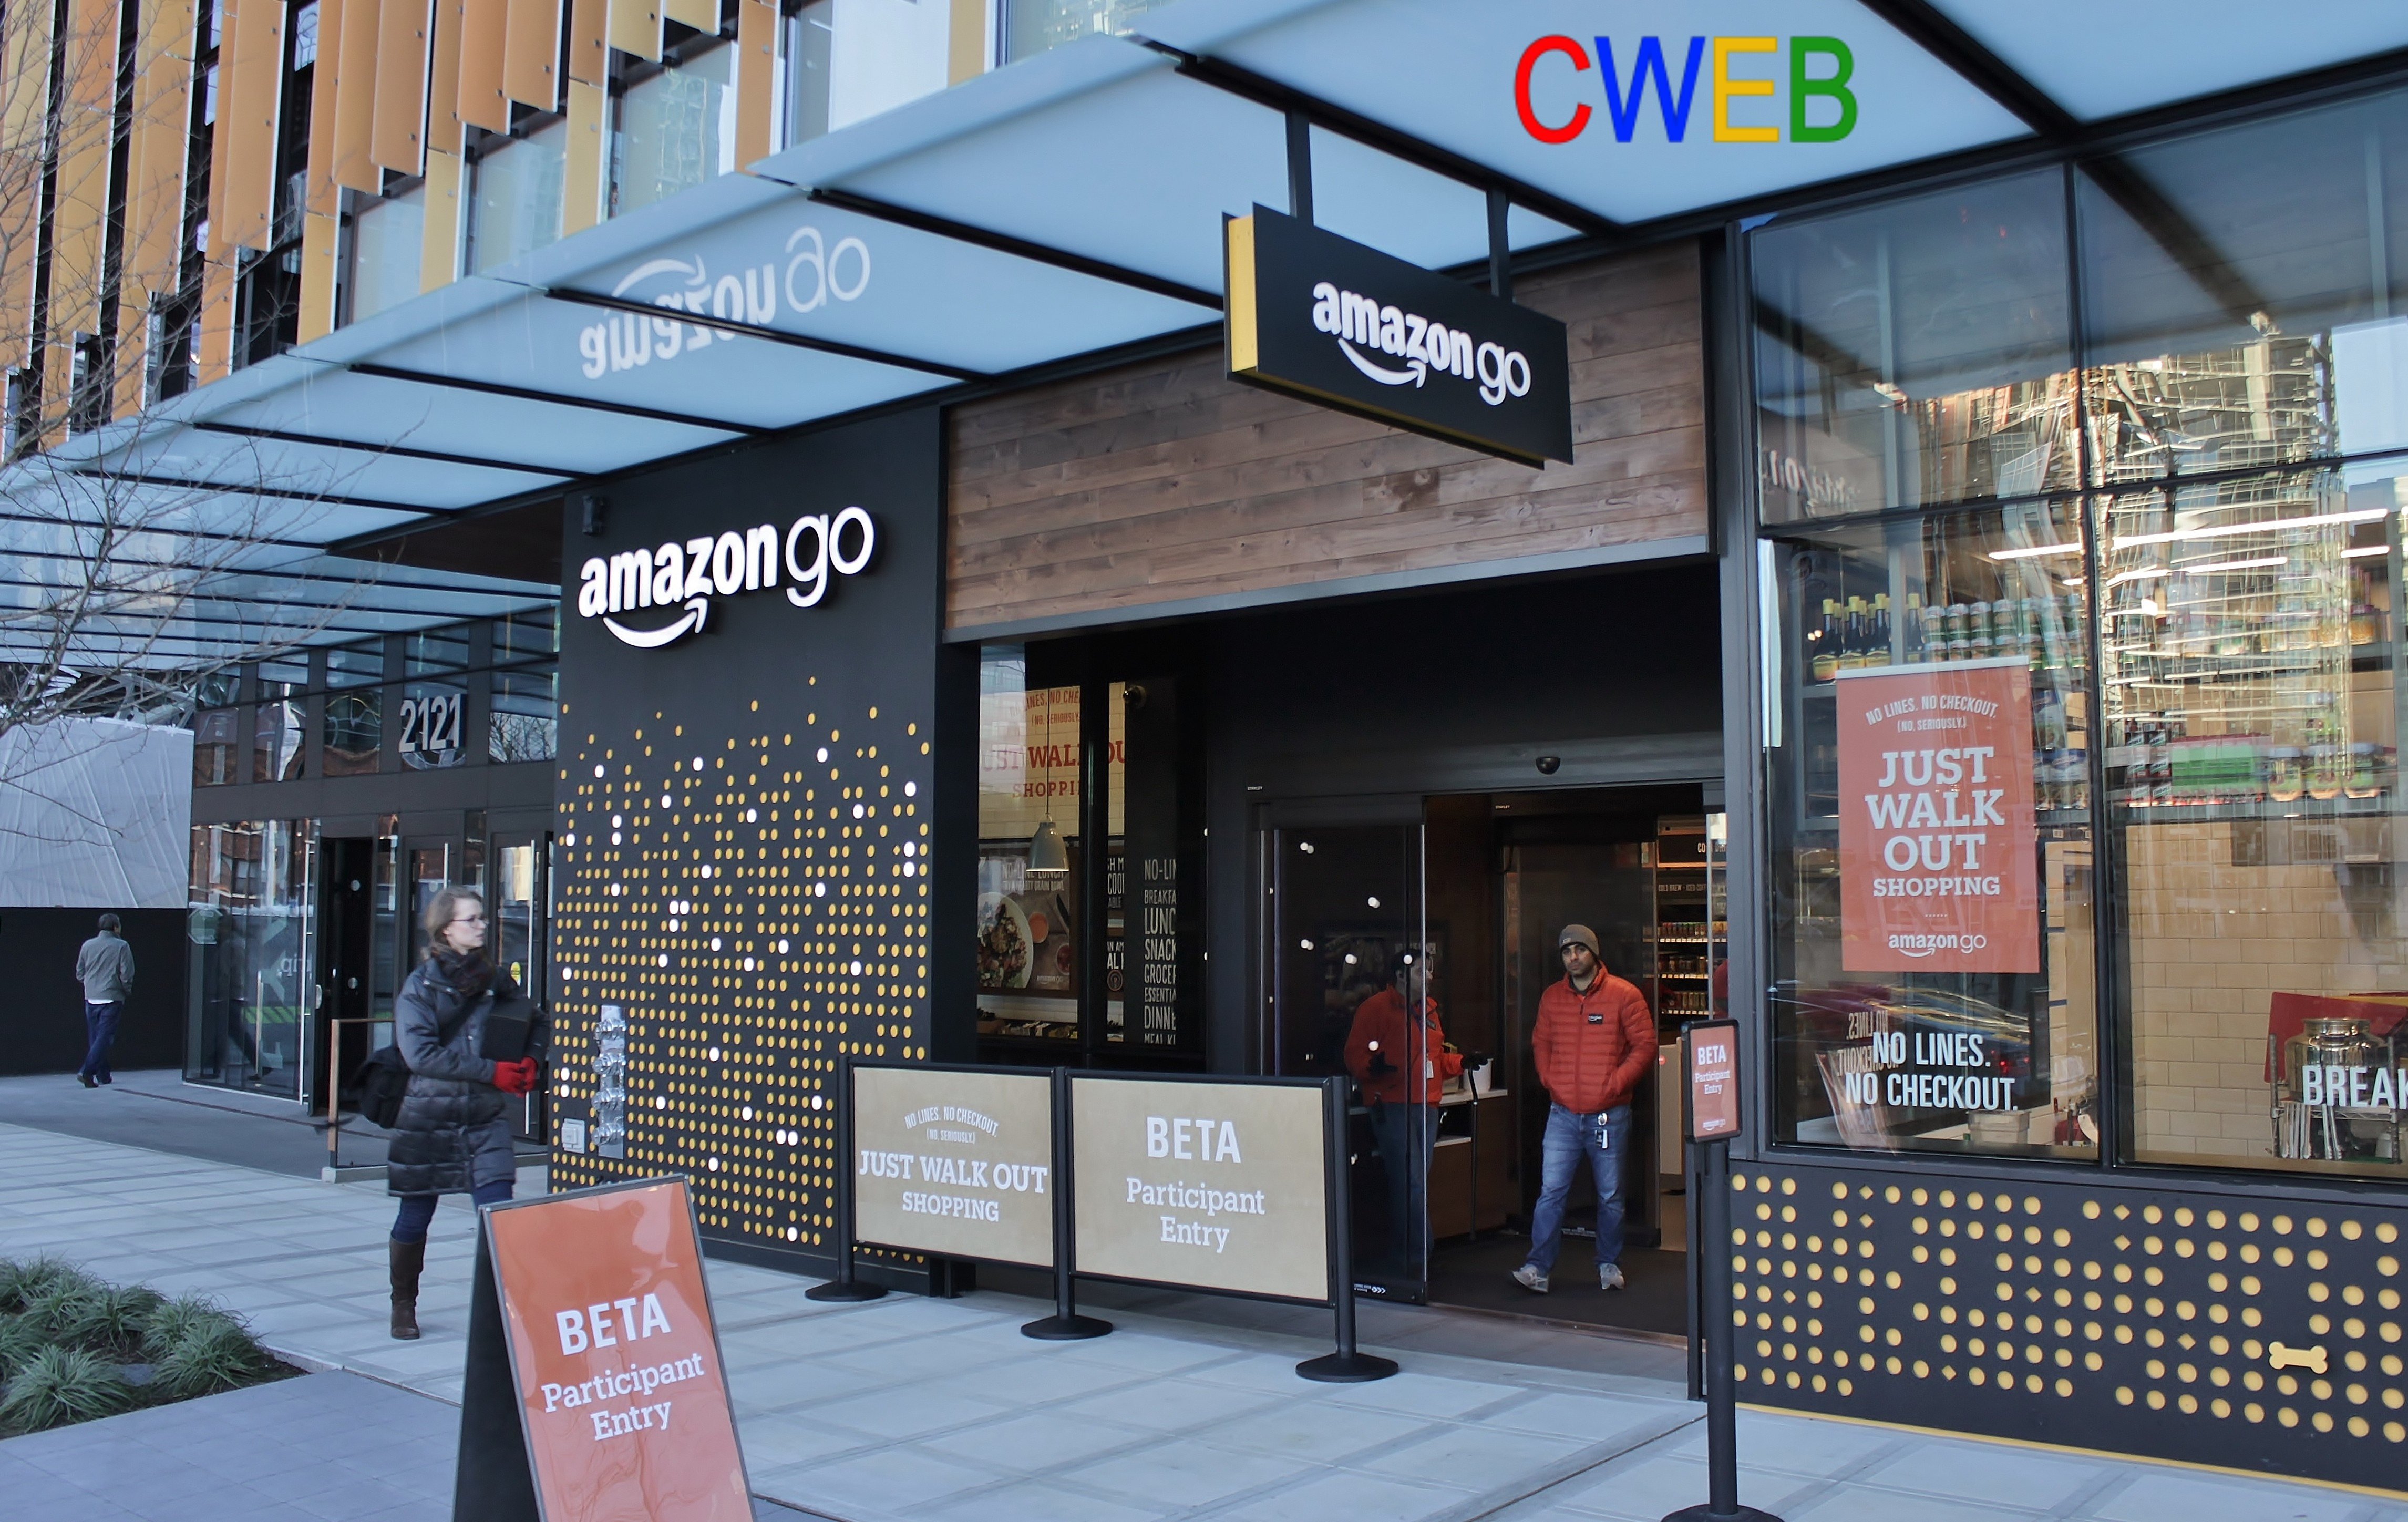 Amazon_Go_in_Seattle,_December_2016